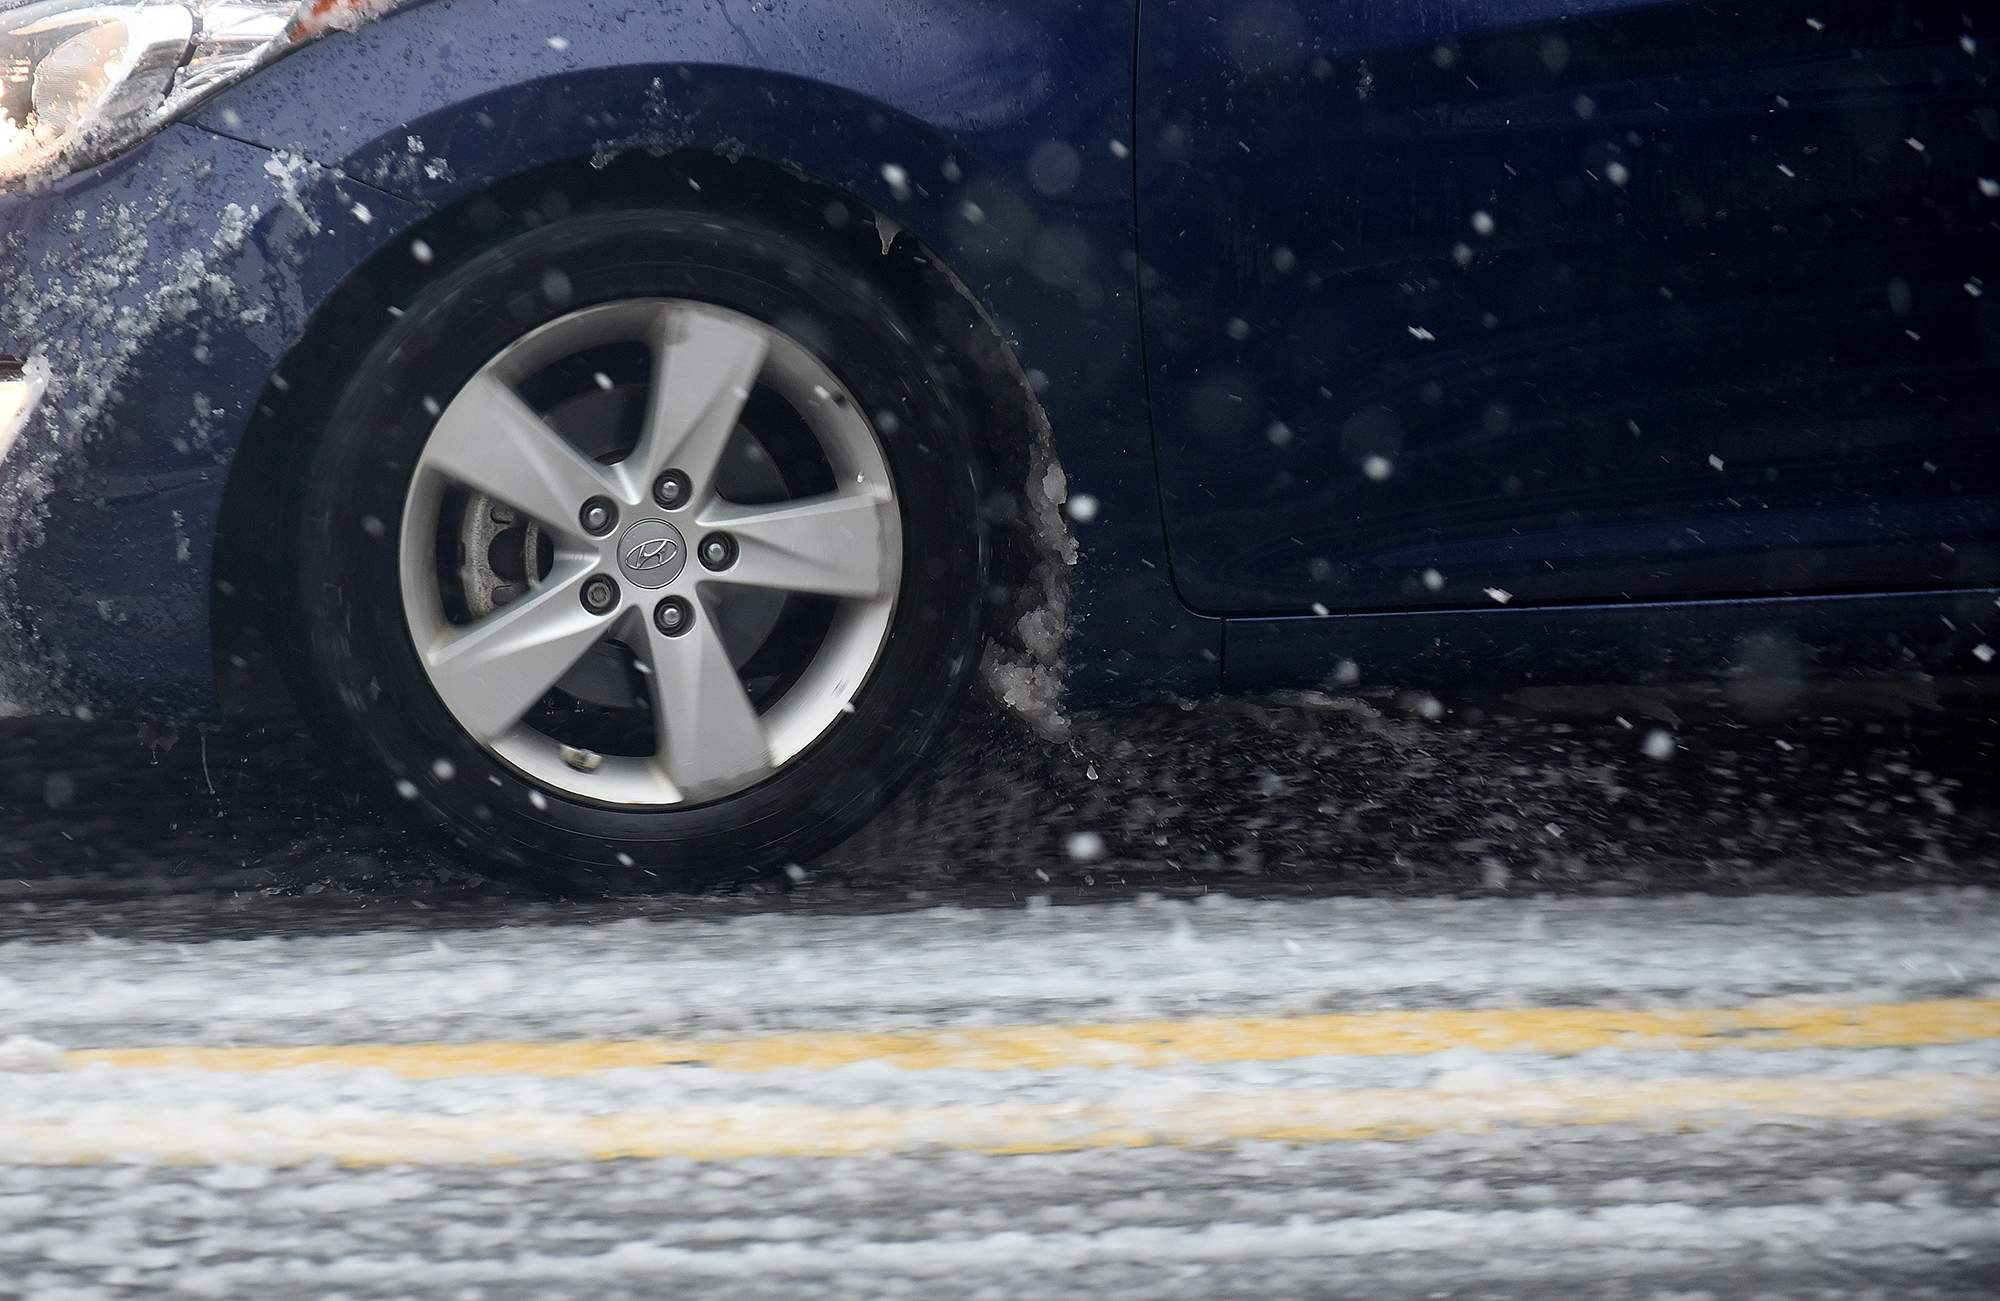 A car drives through slushy conditions on High Street in Burlington City during a snowstorm on Wednesday, March 7, 2018. [CARL KOSOLA / STAFF PHOTOJOURNALIST]